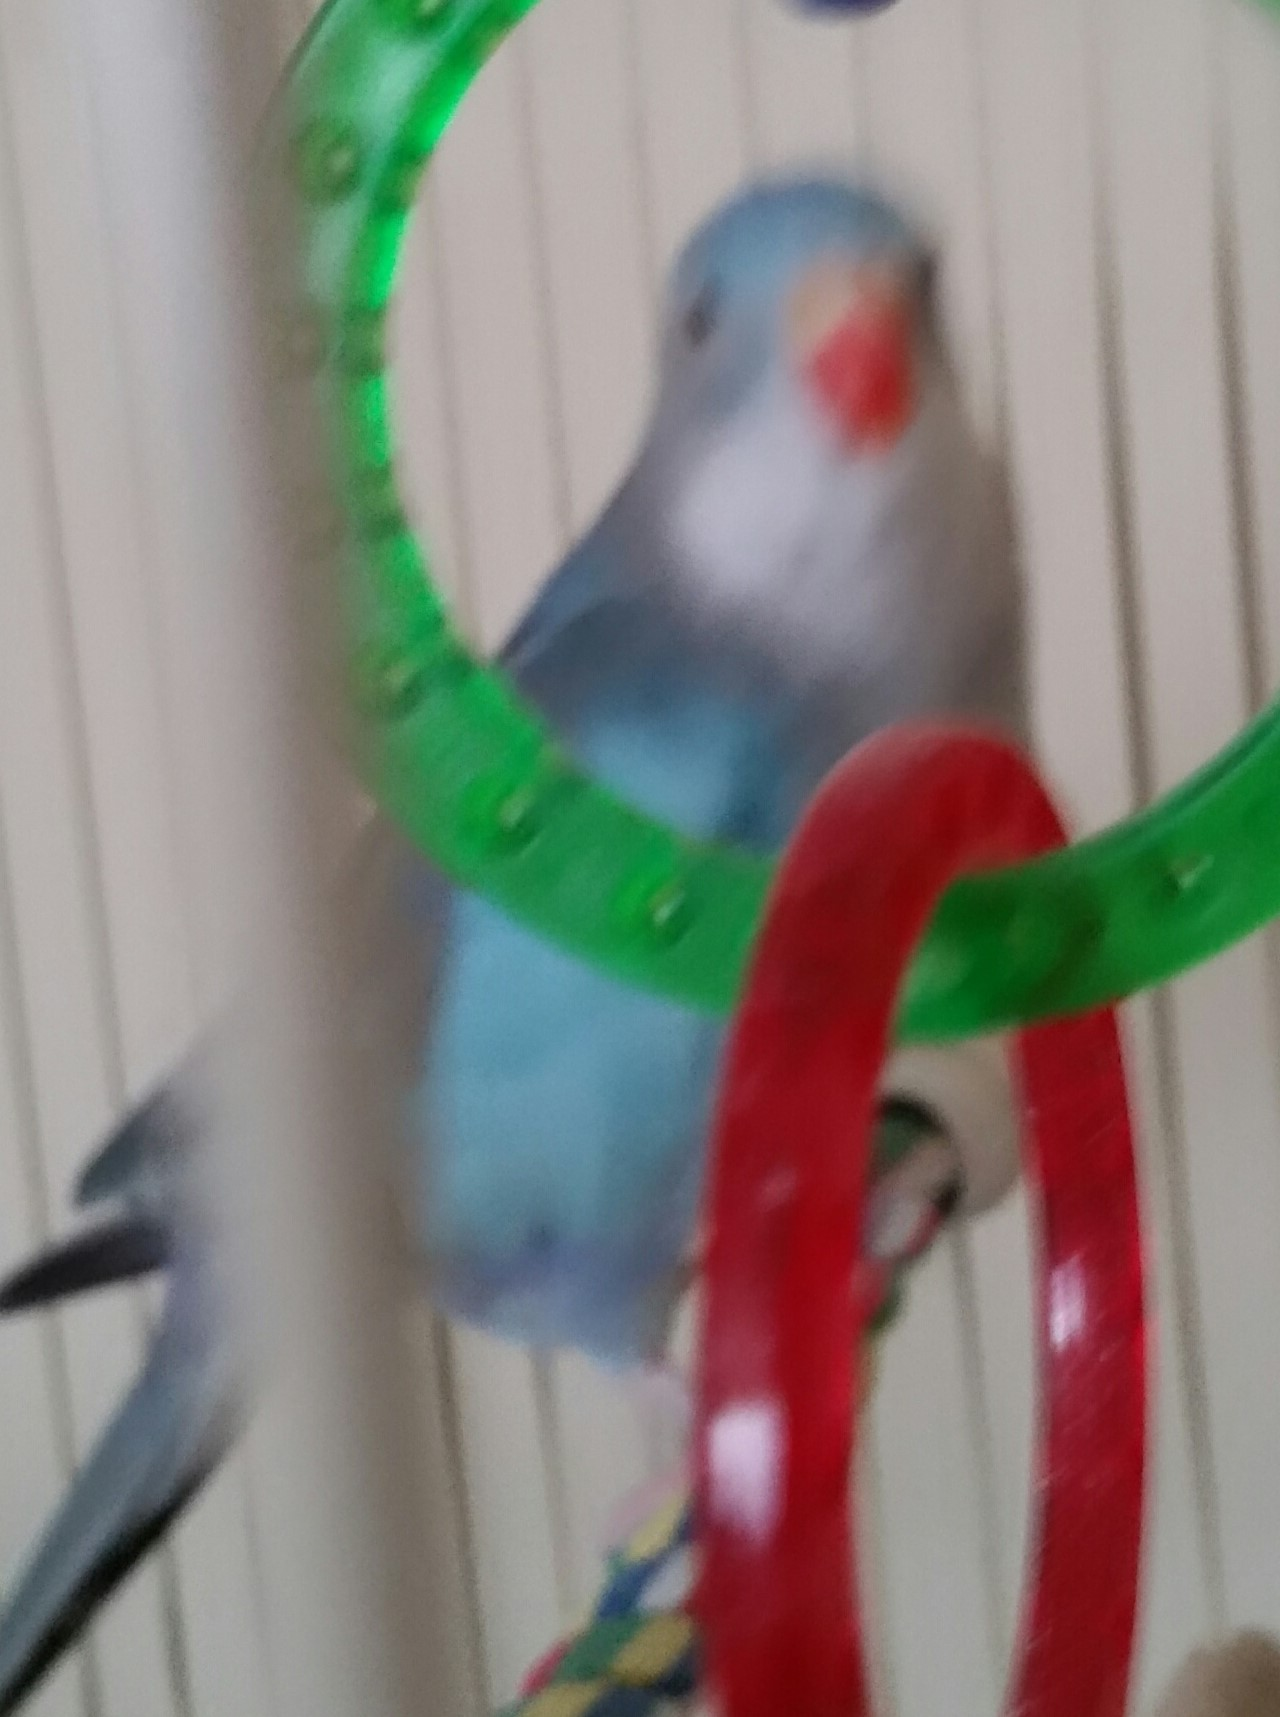 parakeet princess of wales